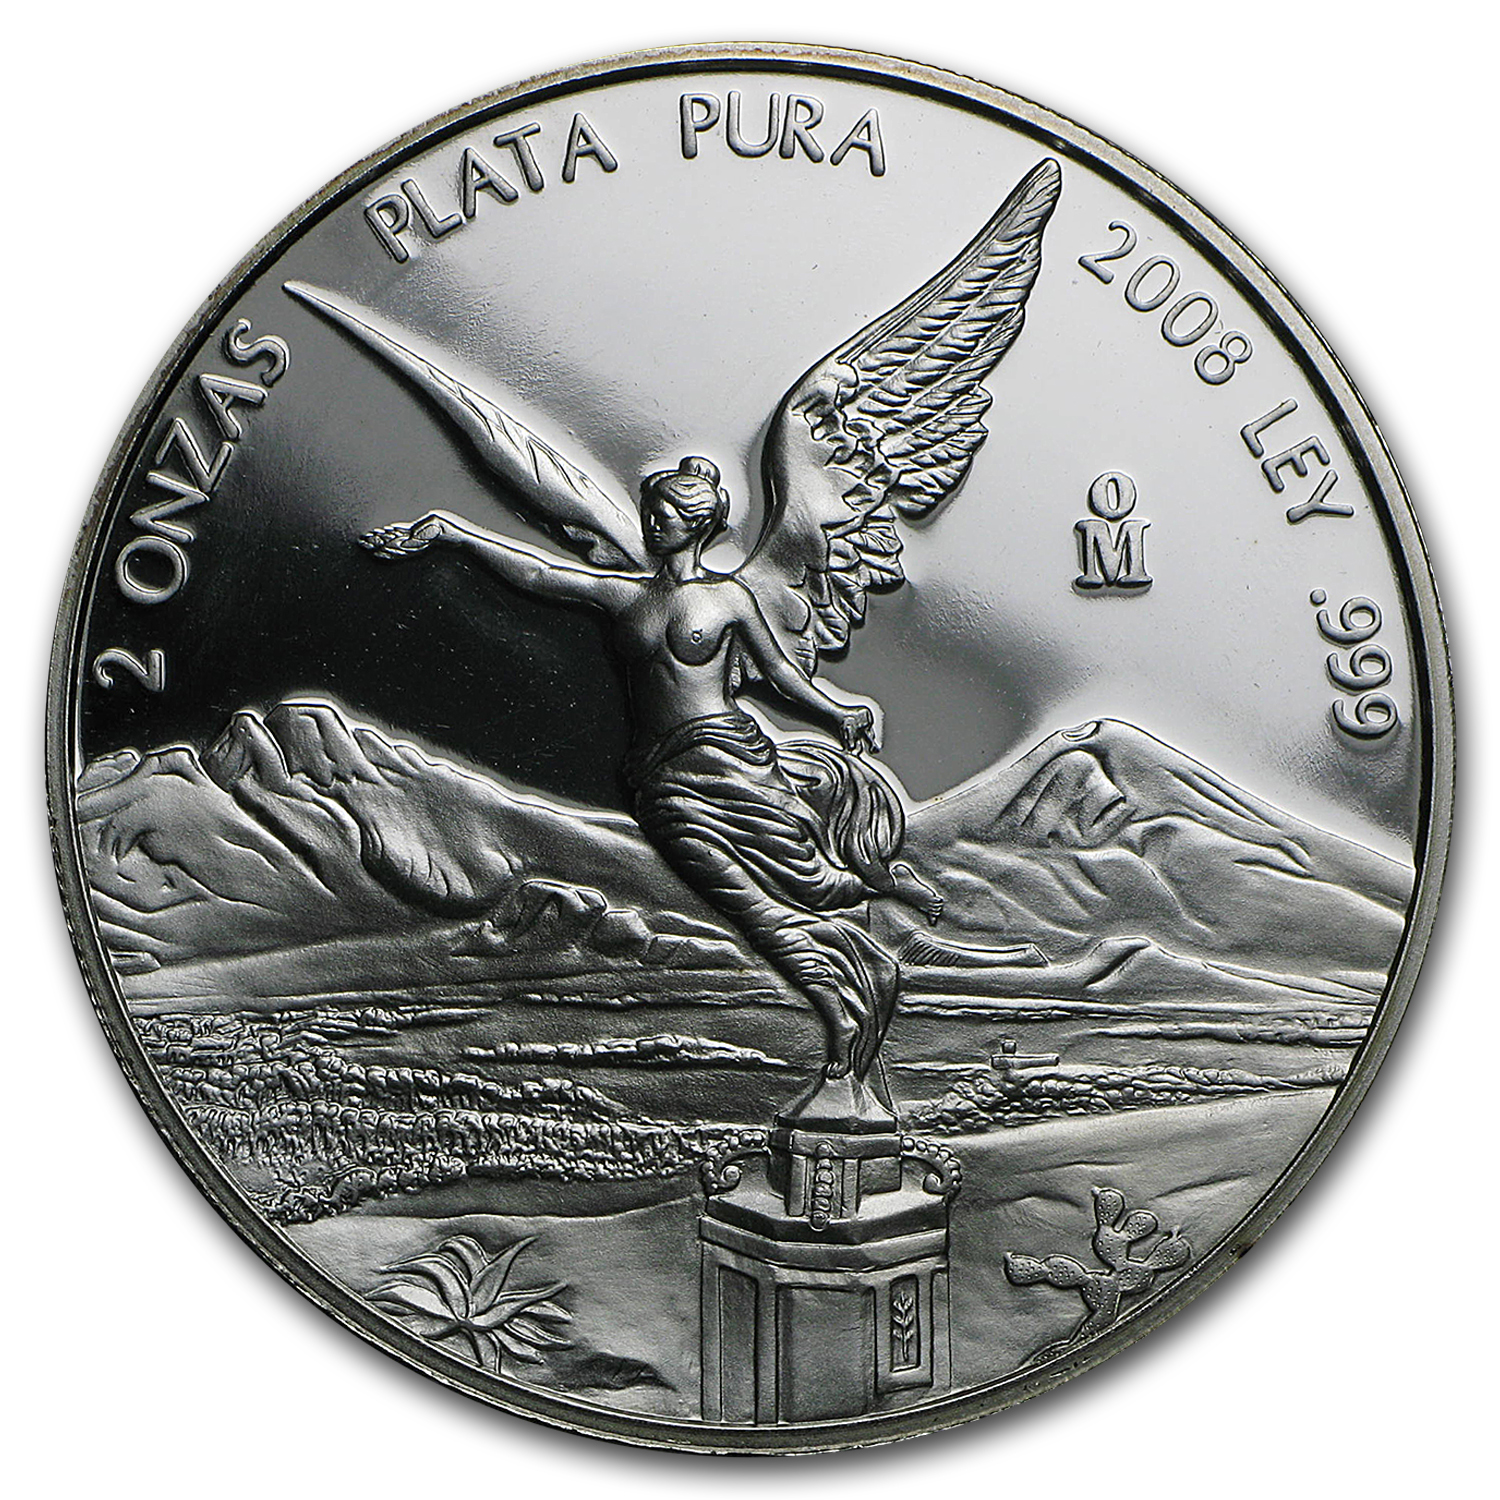 2008 Mexico 2 oz Silver Libertad Proof (In Capsule)